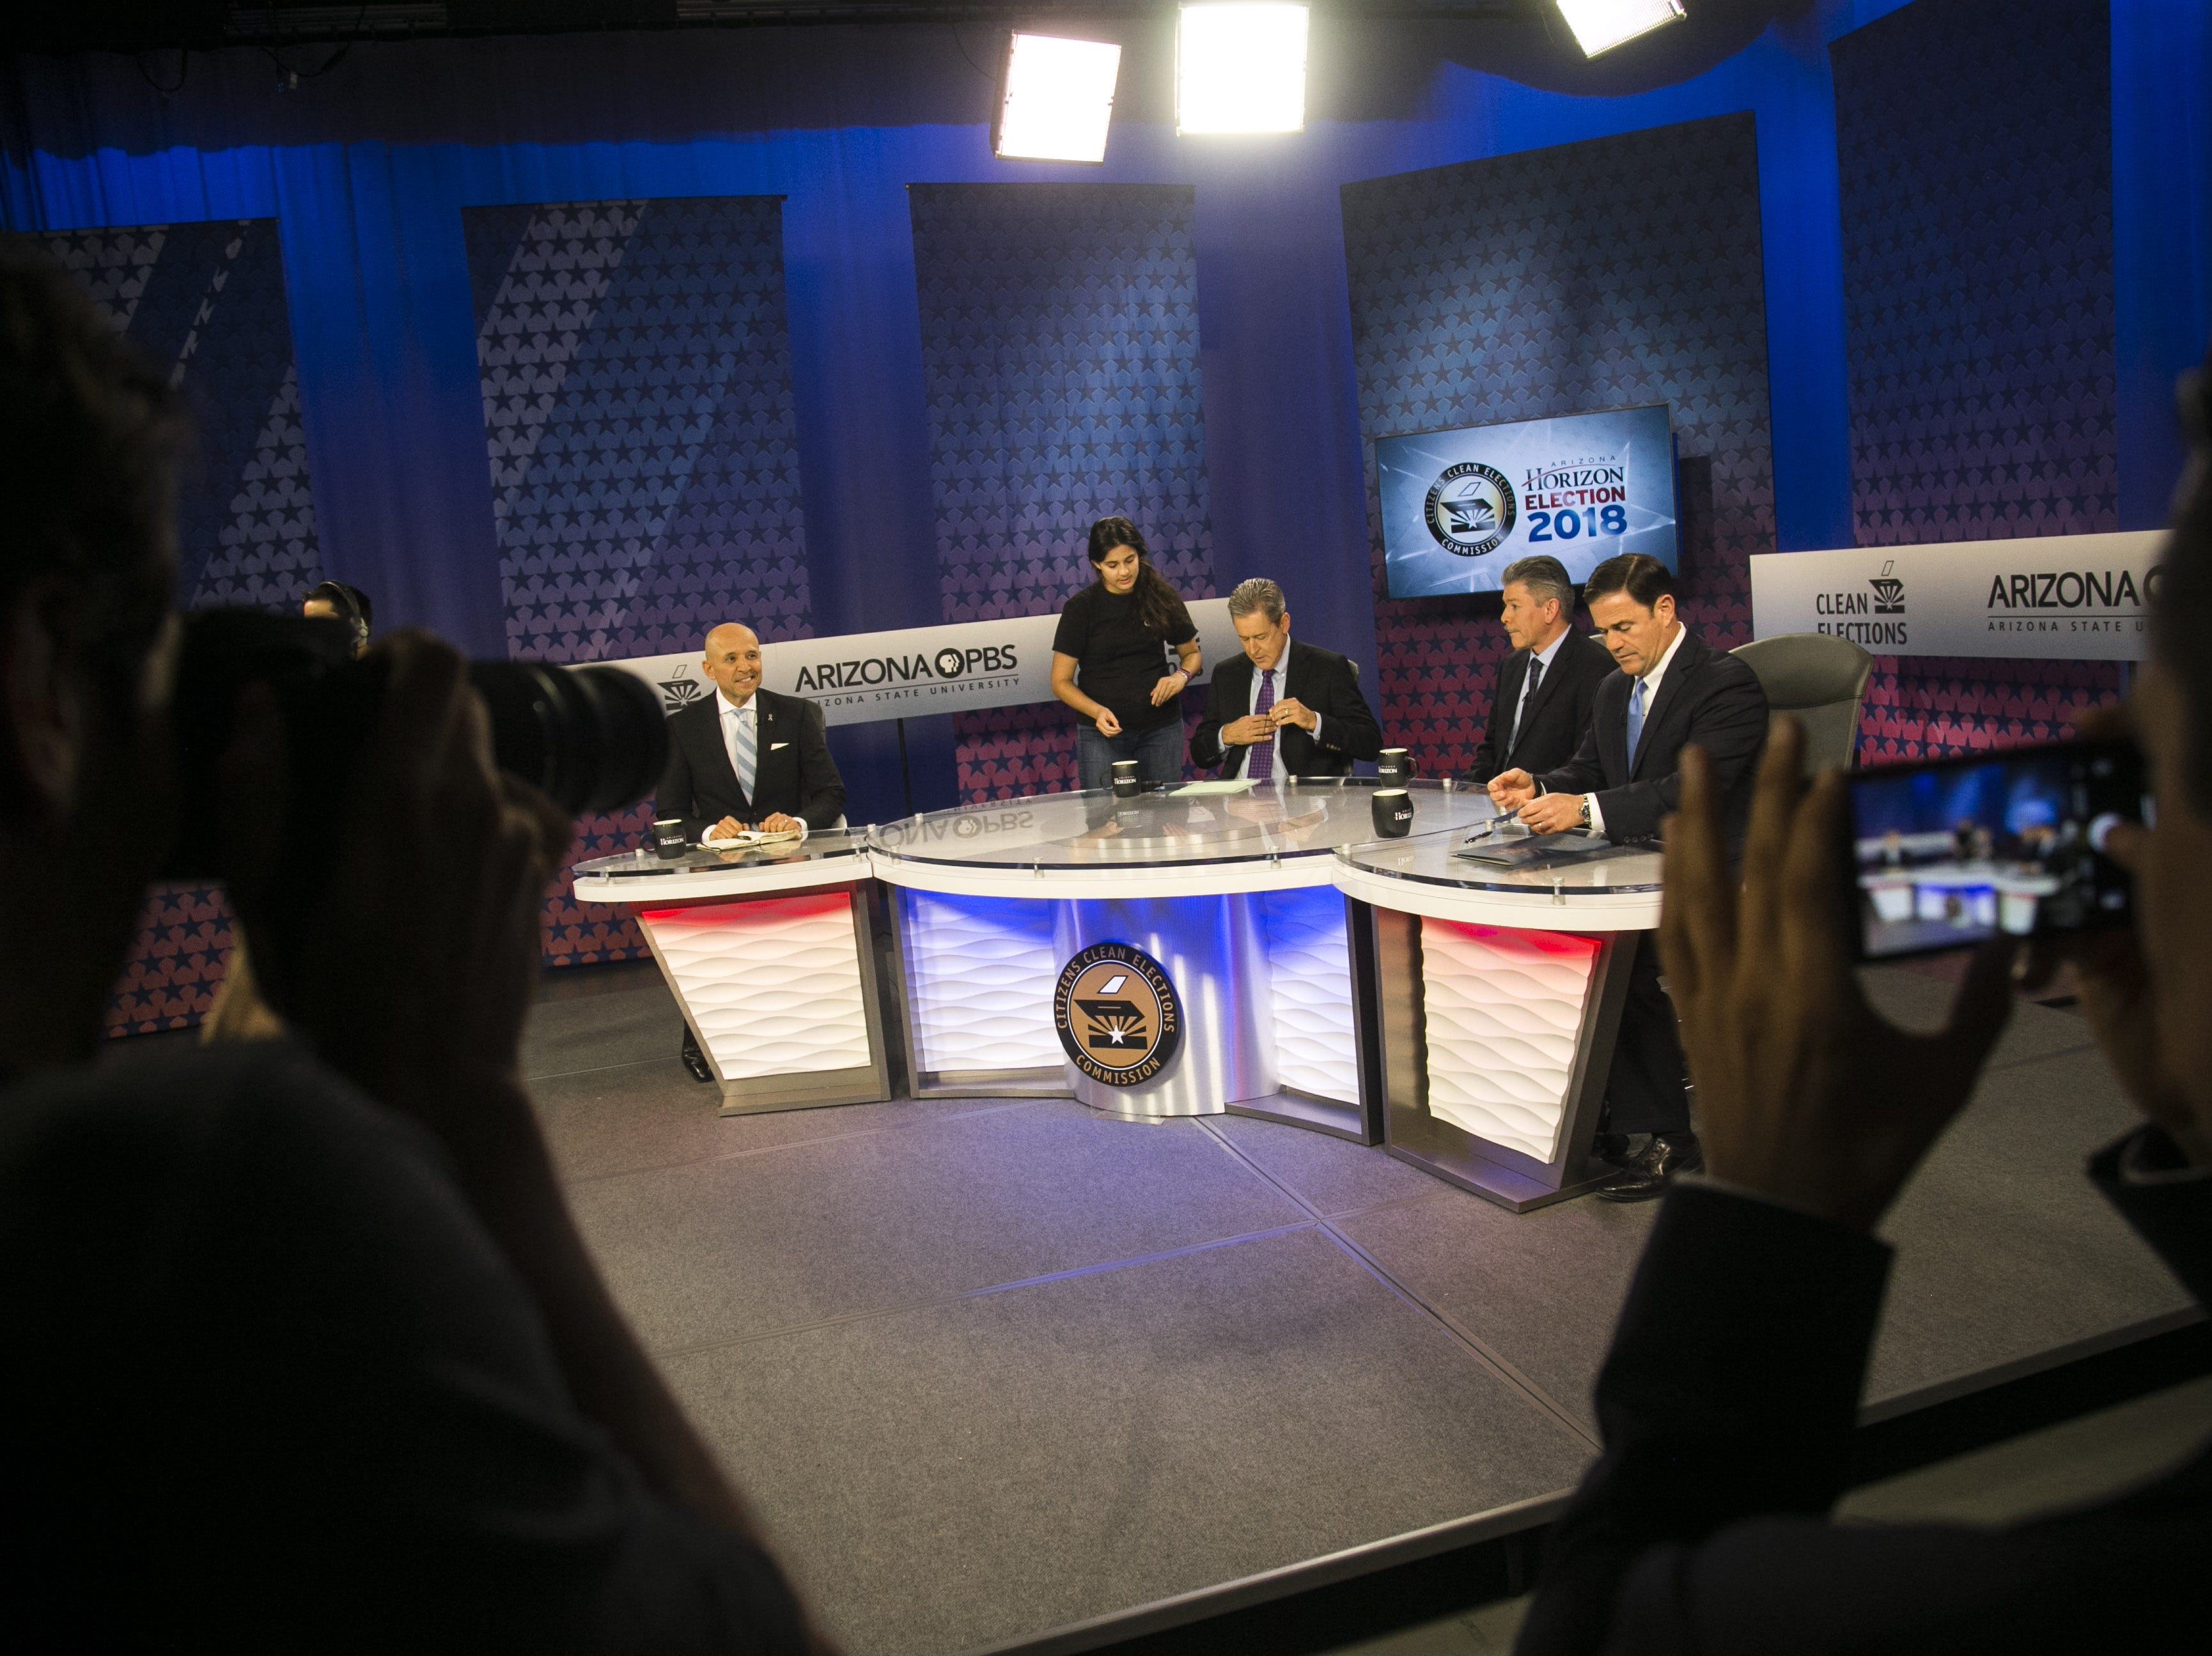 Candidates David Garcia (left), Angel Torres (second from right) and current governor Doug Ducey (right) prep for their debate with host Ted Simons (center) before the gubernatorial debate on PBS inside the Walter Cronkite School of Journalism and Mass Communication on Sept. 24, 2018.